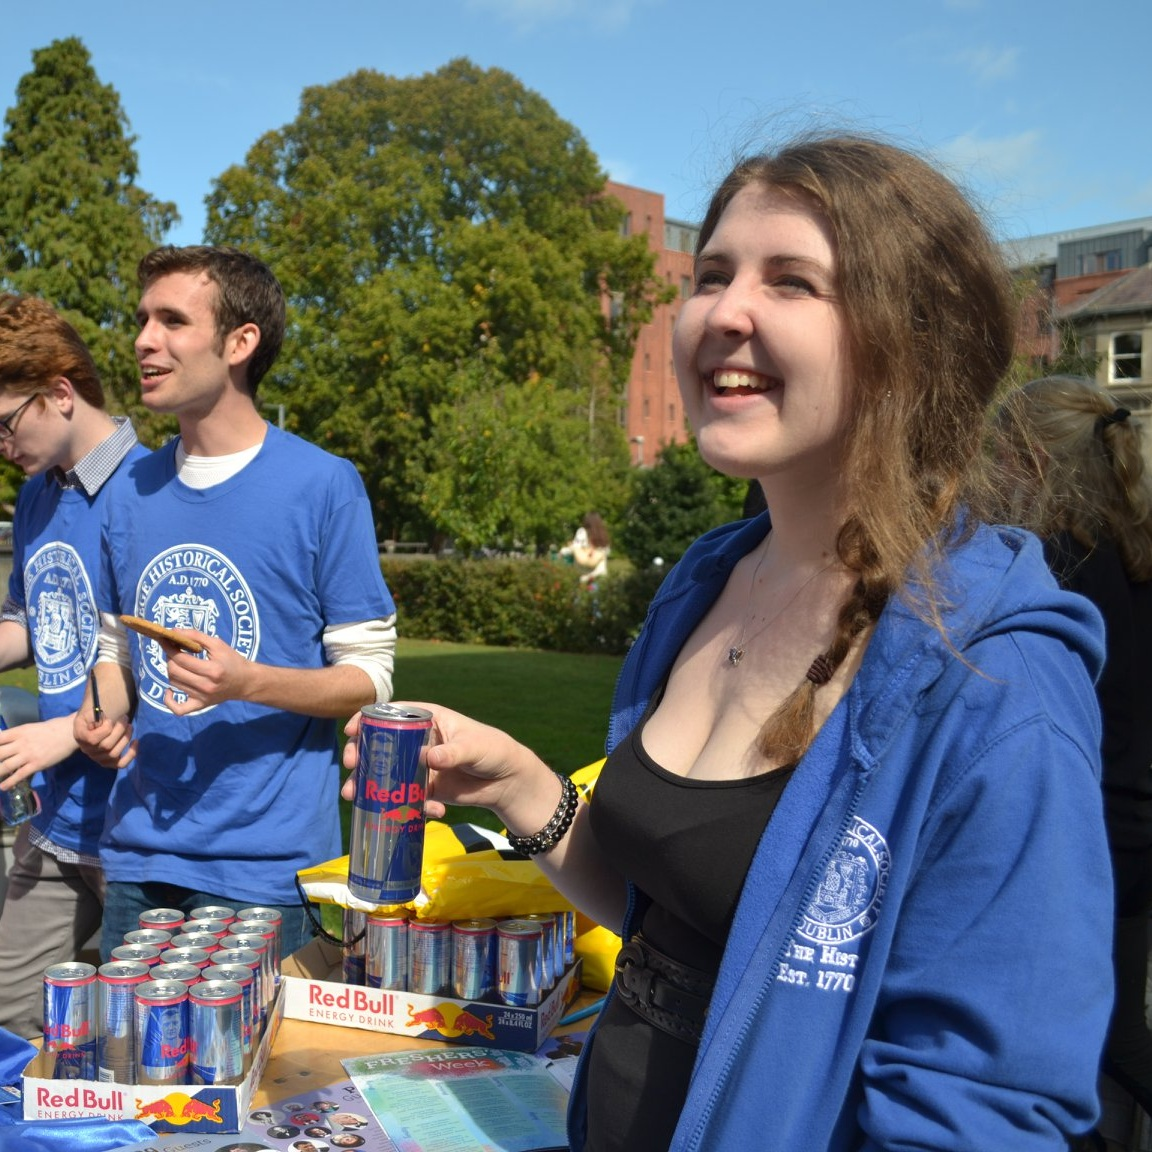 Campus-wide outreach with ample branding opportunities